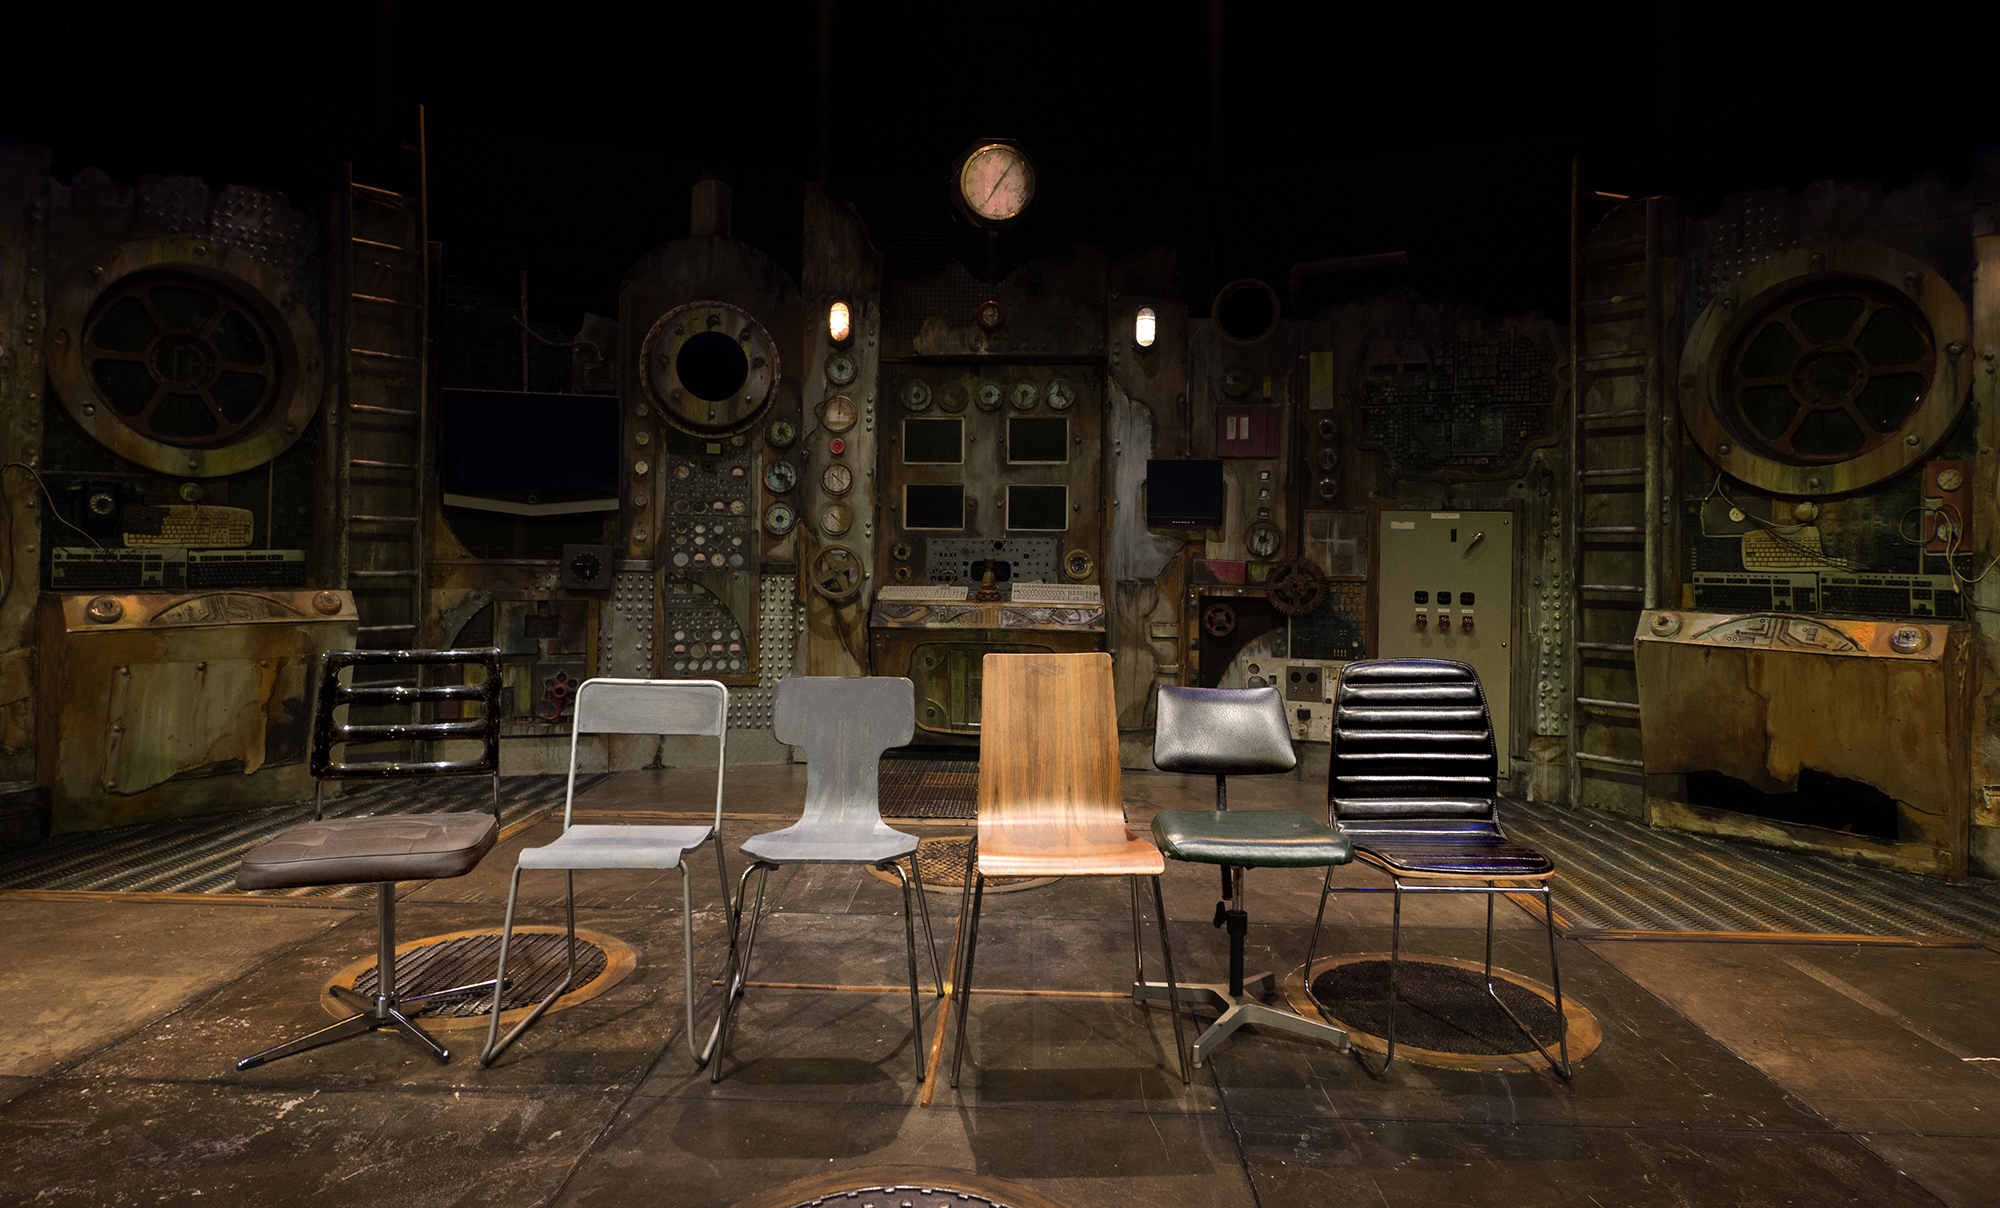 Six chairs lined up on stage in a variety of styles and shapes: some metal and wooden, another leathery and plush.